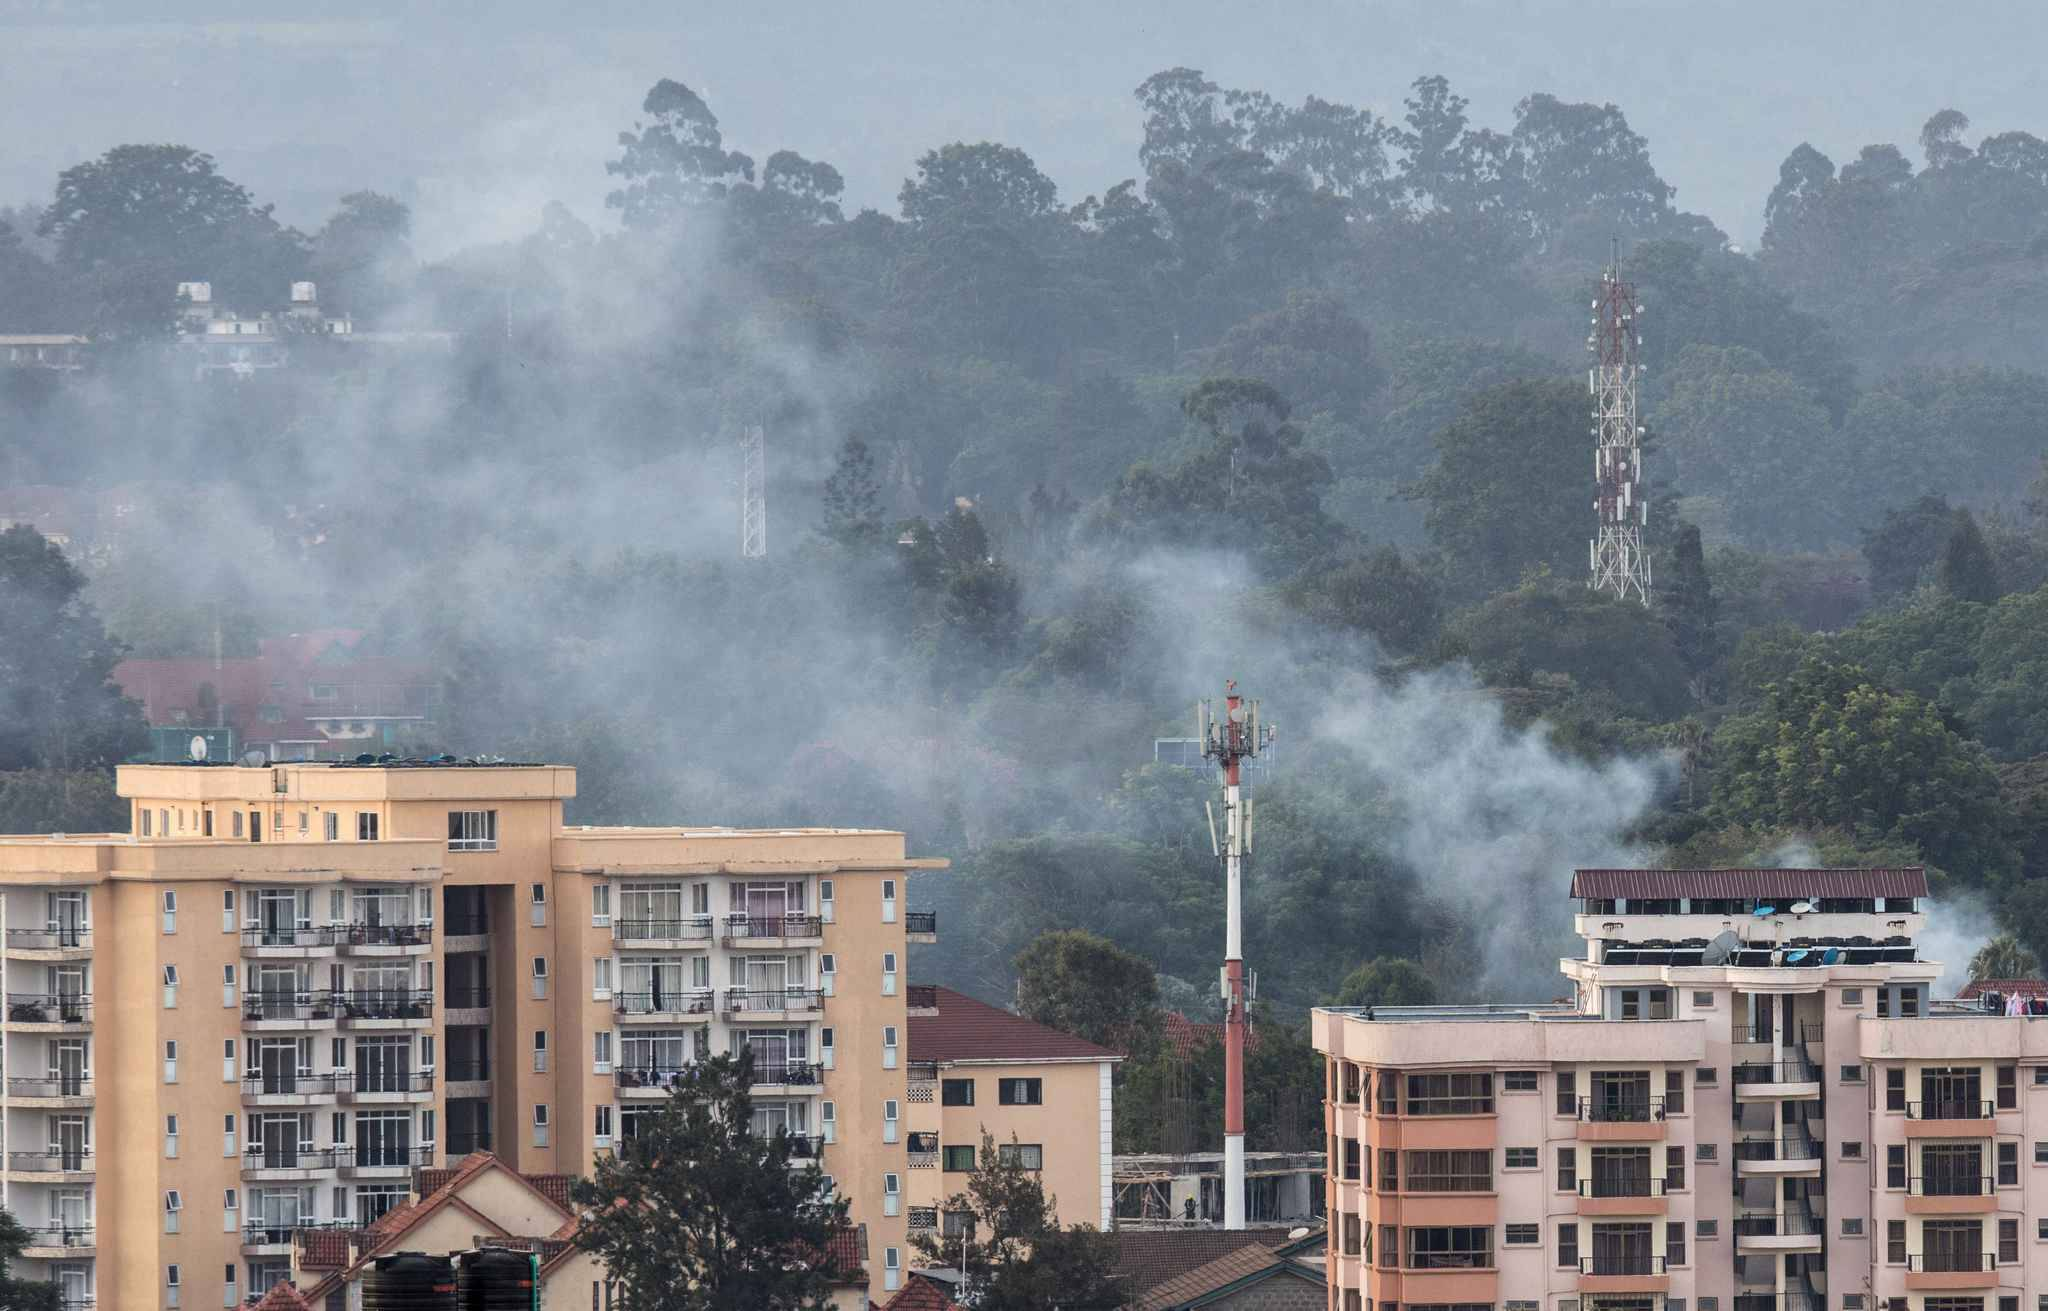 (190115) -- NAIROBI, Jan. 15, 2019 (Xinhua) -- Smoke rises from the blast area after an attack at an upmarket hotel and office complex in Nairobi, Kenya, on Jan. 15, 2019. At least three people have been confirmed dead and several others injured following an attack at an upmarket hotel and office complex in Nairobi on Tuesday, police said.